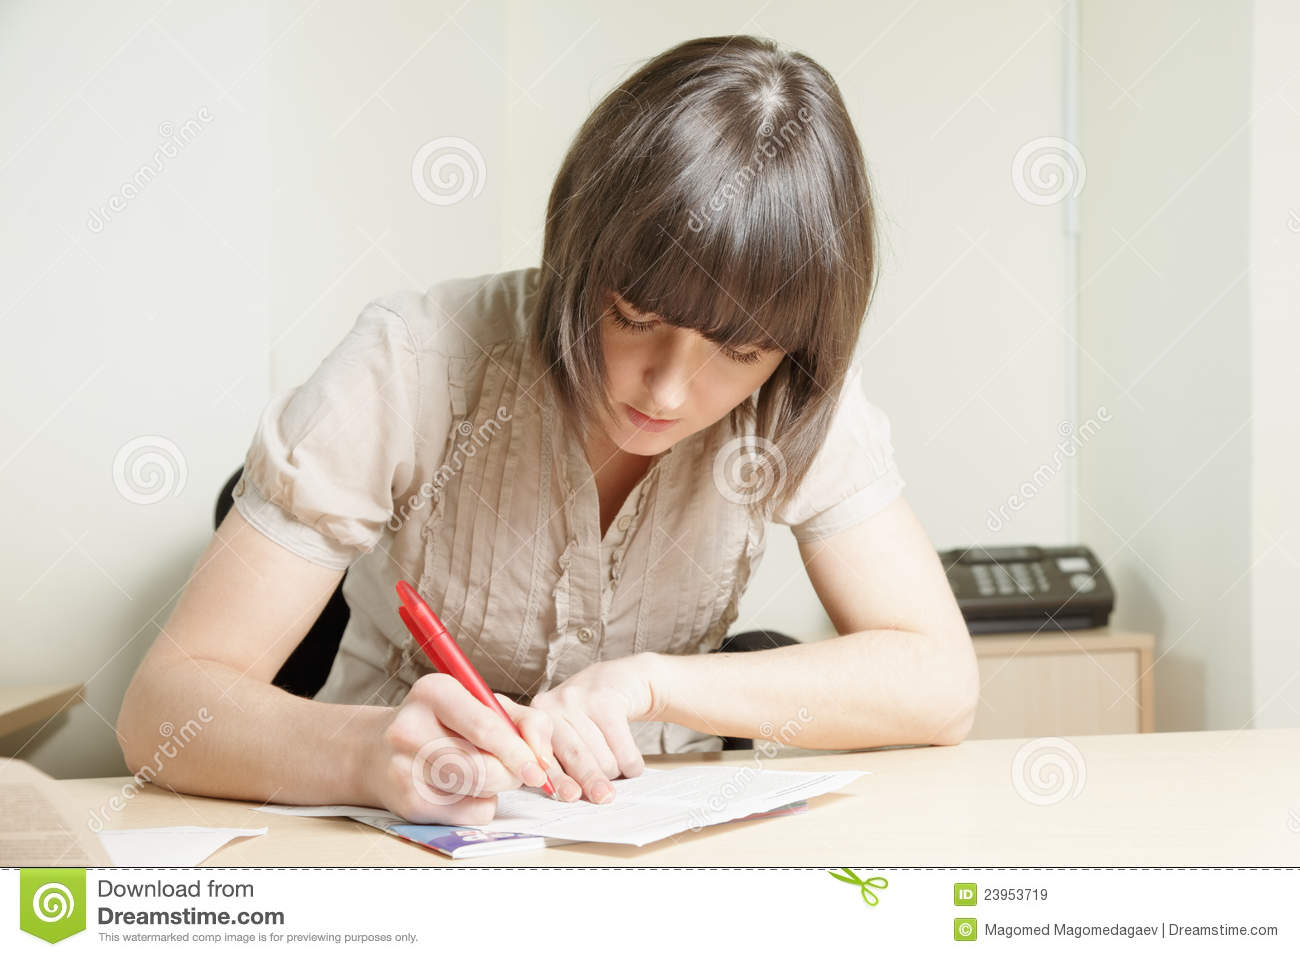 Young brunette woman writing on paper sheet at office desk.